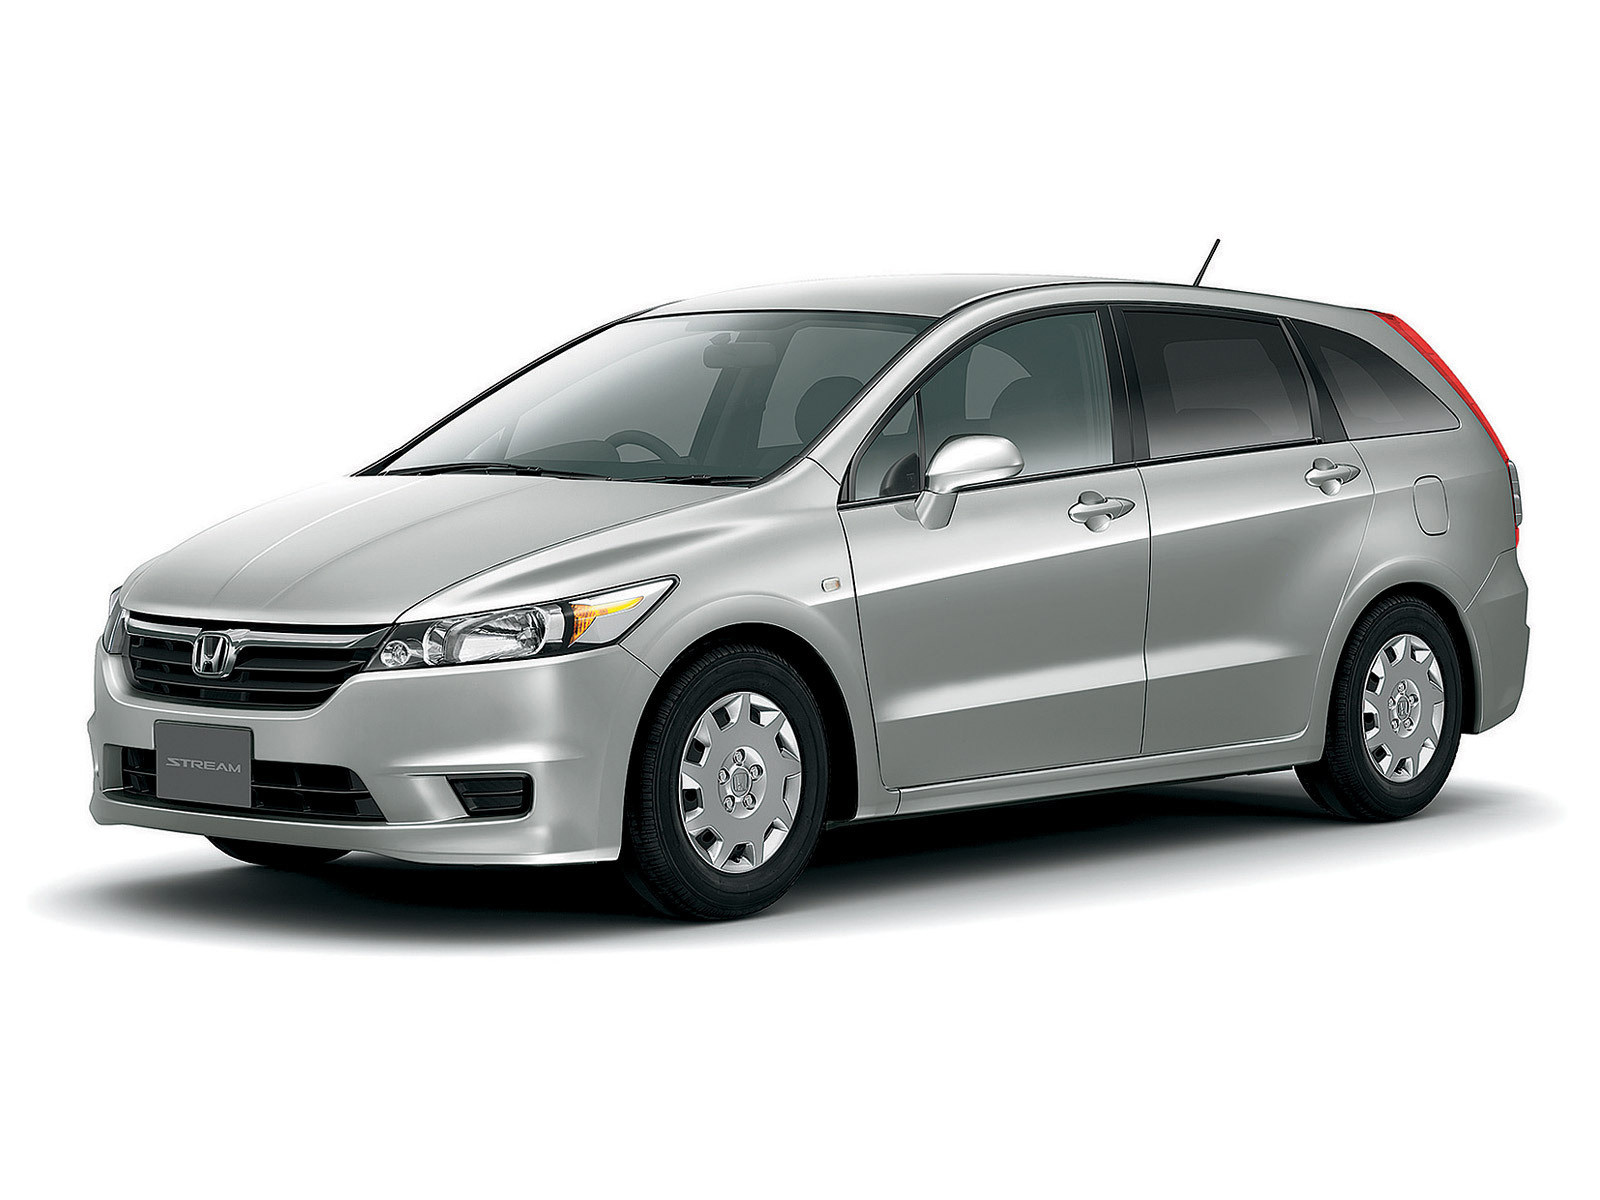 Honda_stream_original